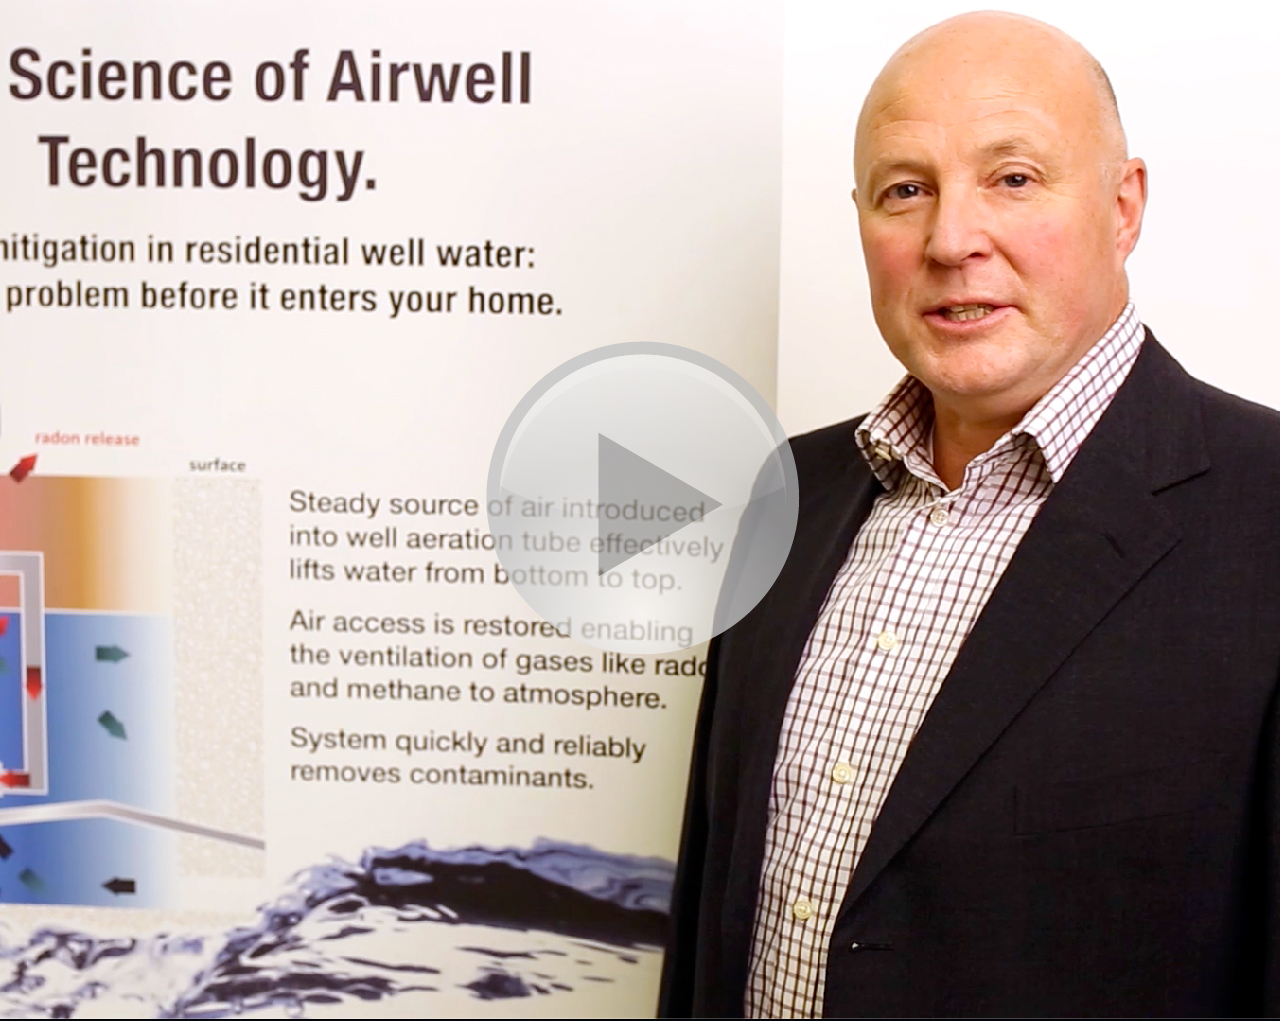 Discover the science of Airwell technology with David Innes.